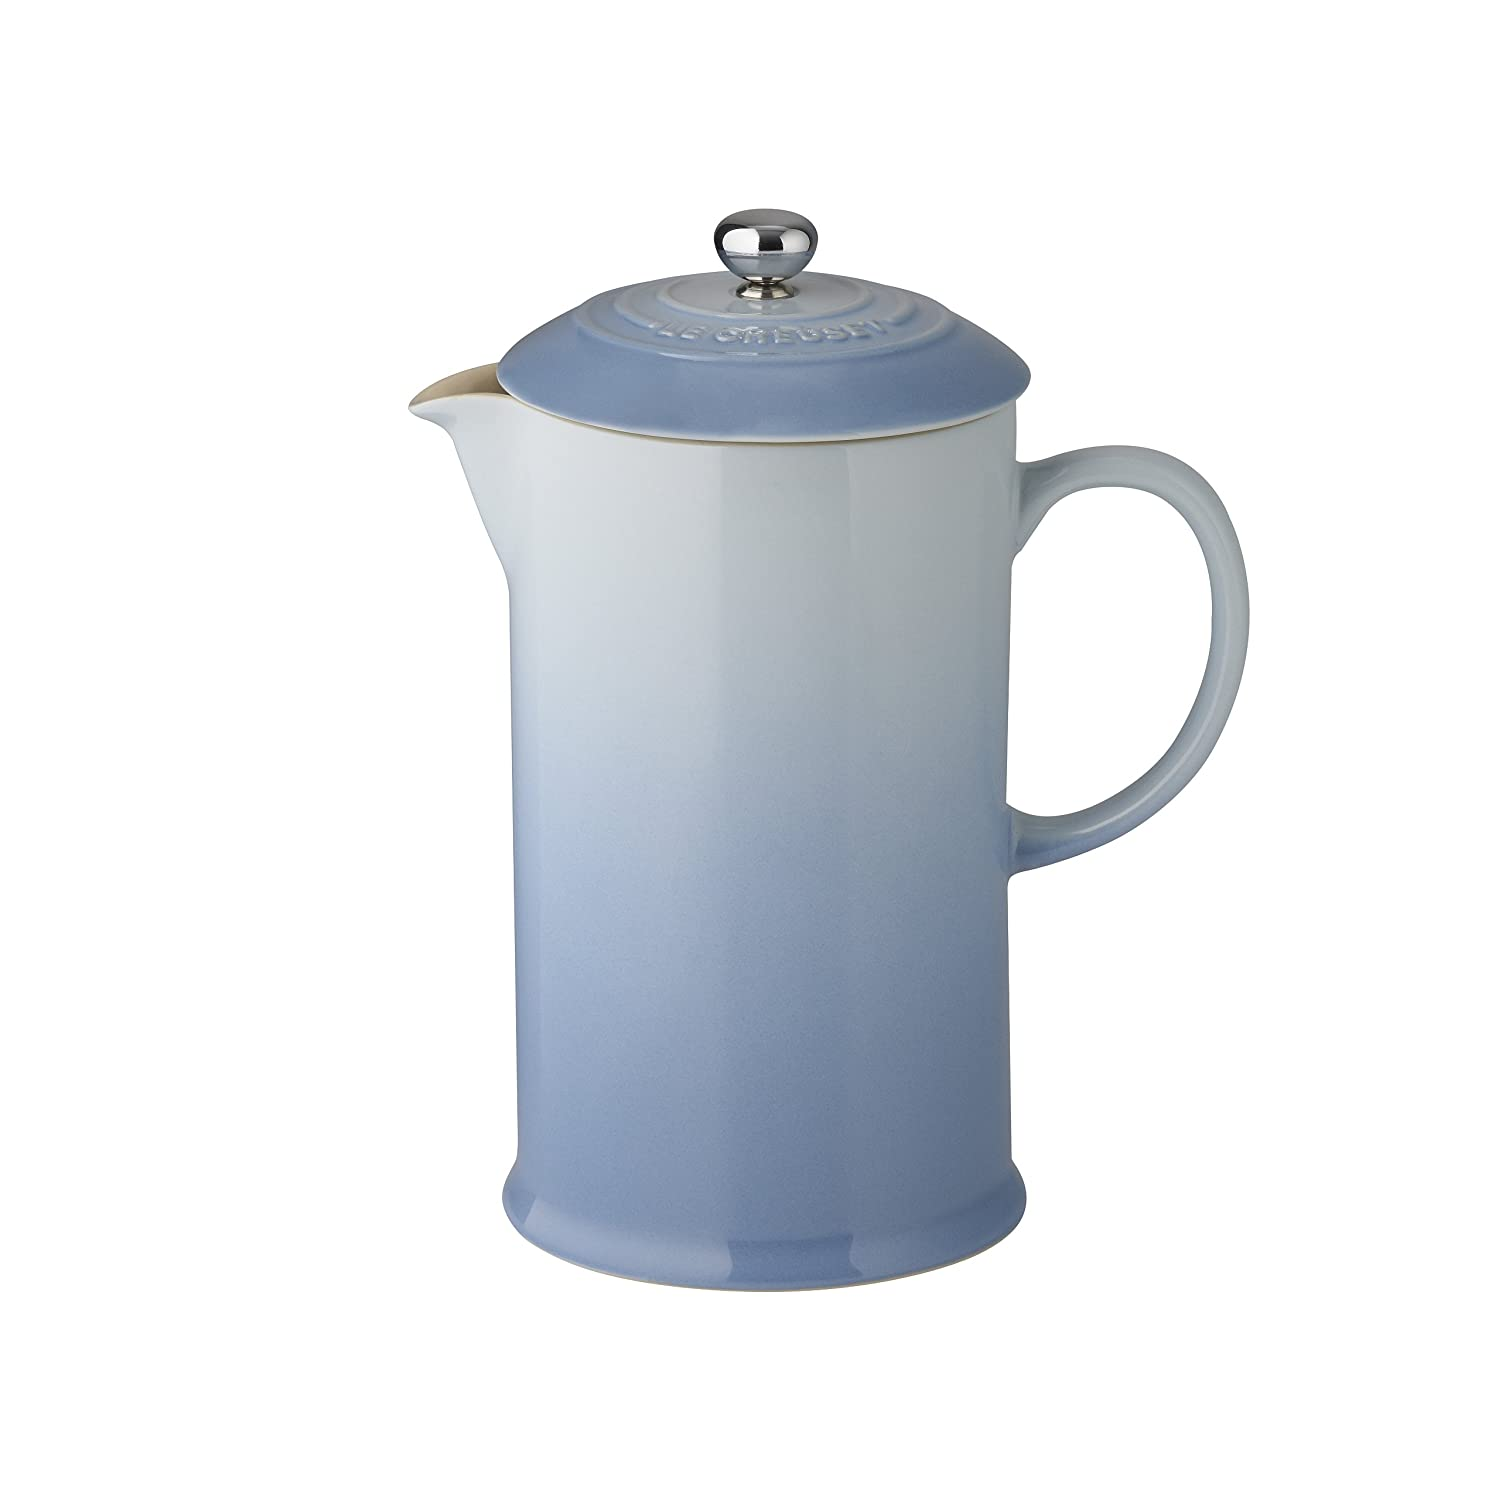 Le Creuset Stoneware Cafetiere with Metal Press, 750 ml - Cassis 91028200213000